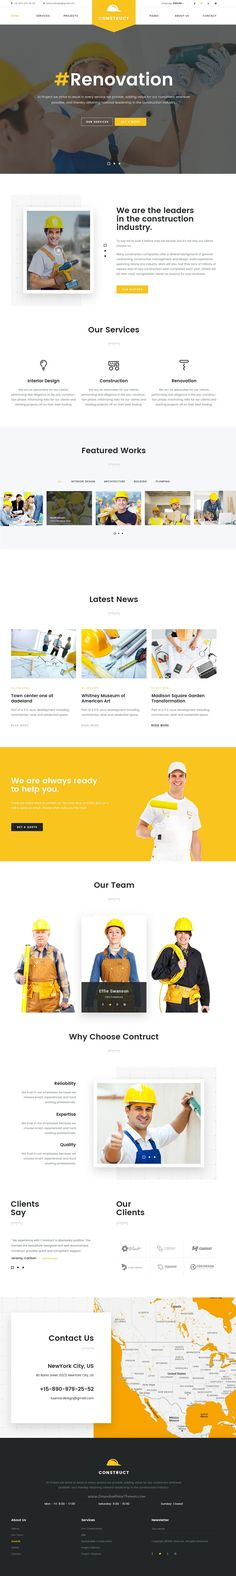 Construction is a business #PSD template for construction, #renovation #companies website with 5 homepages option and 37 PSD pages download now➯ https://themeforest.net/item/construct-mutilconcept-construction-psd-template/16913460?ref=Datasata